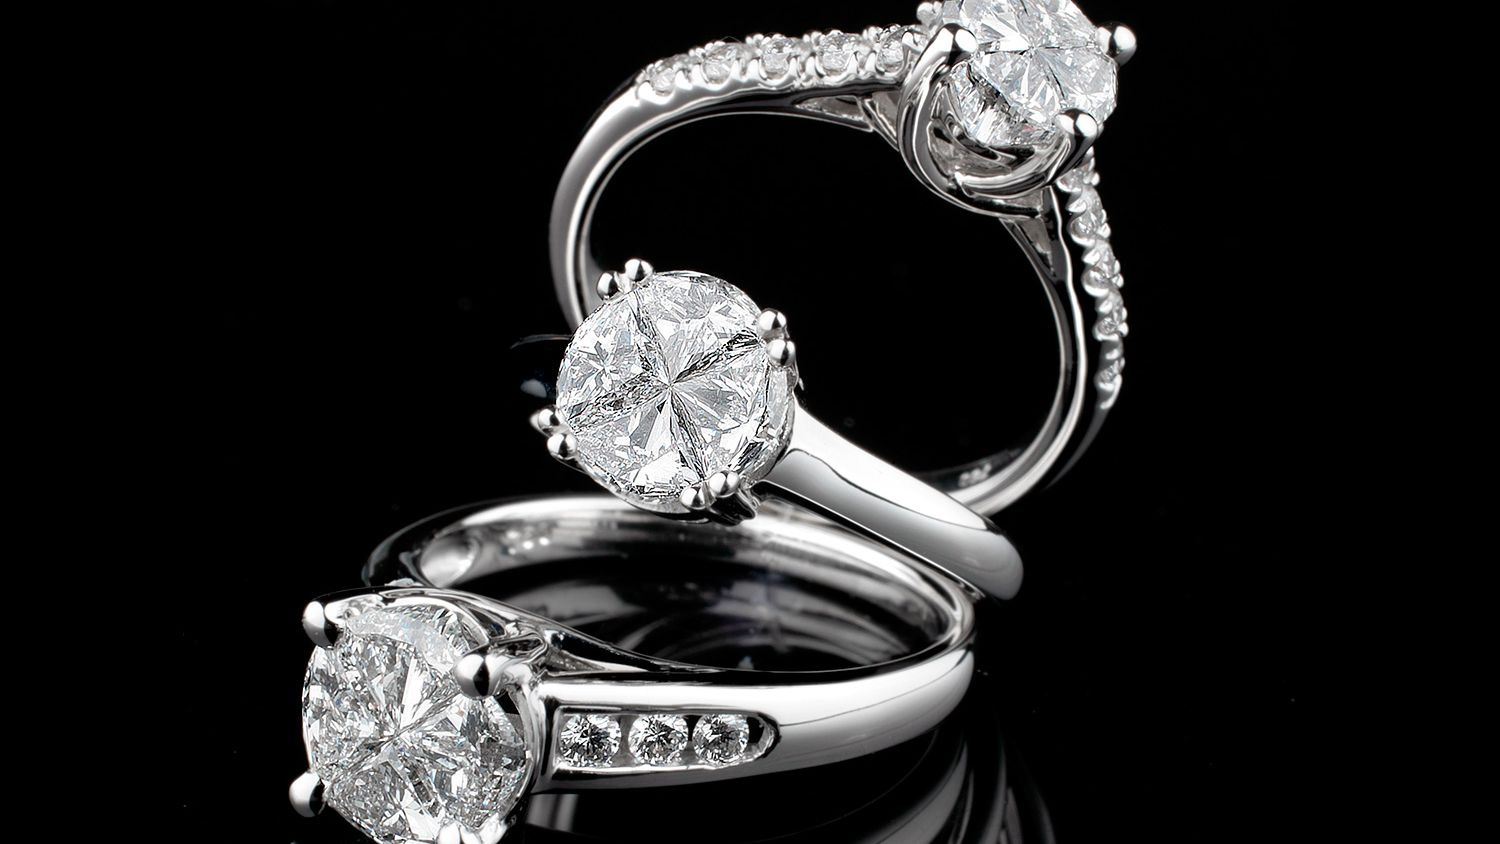 What is the chemical composition of white gold